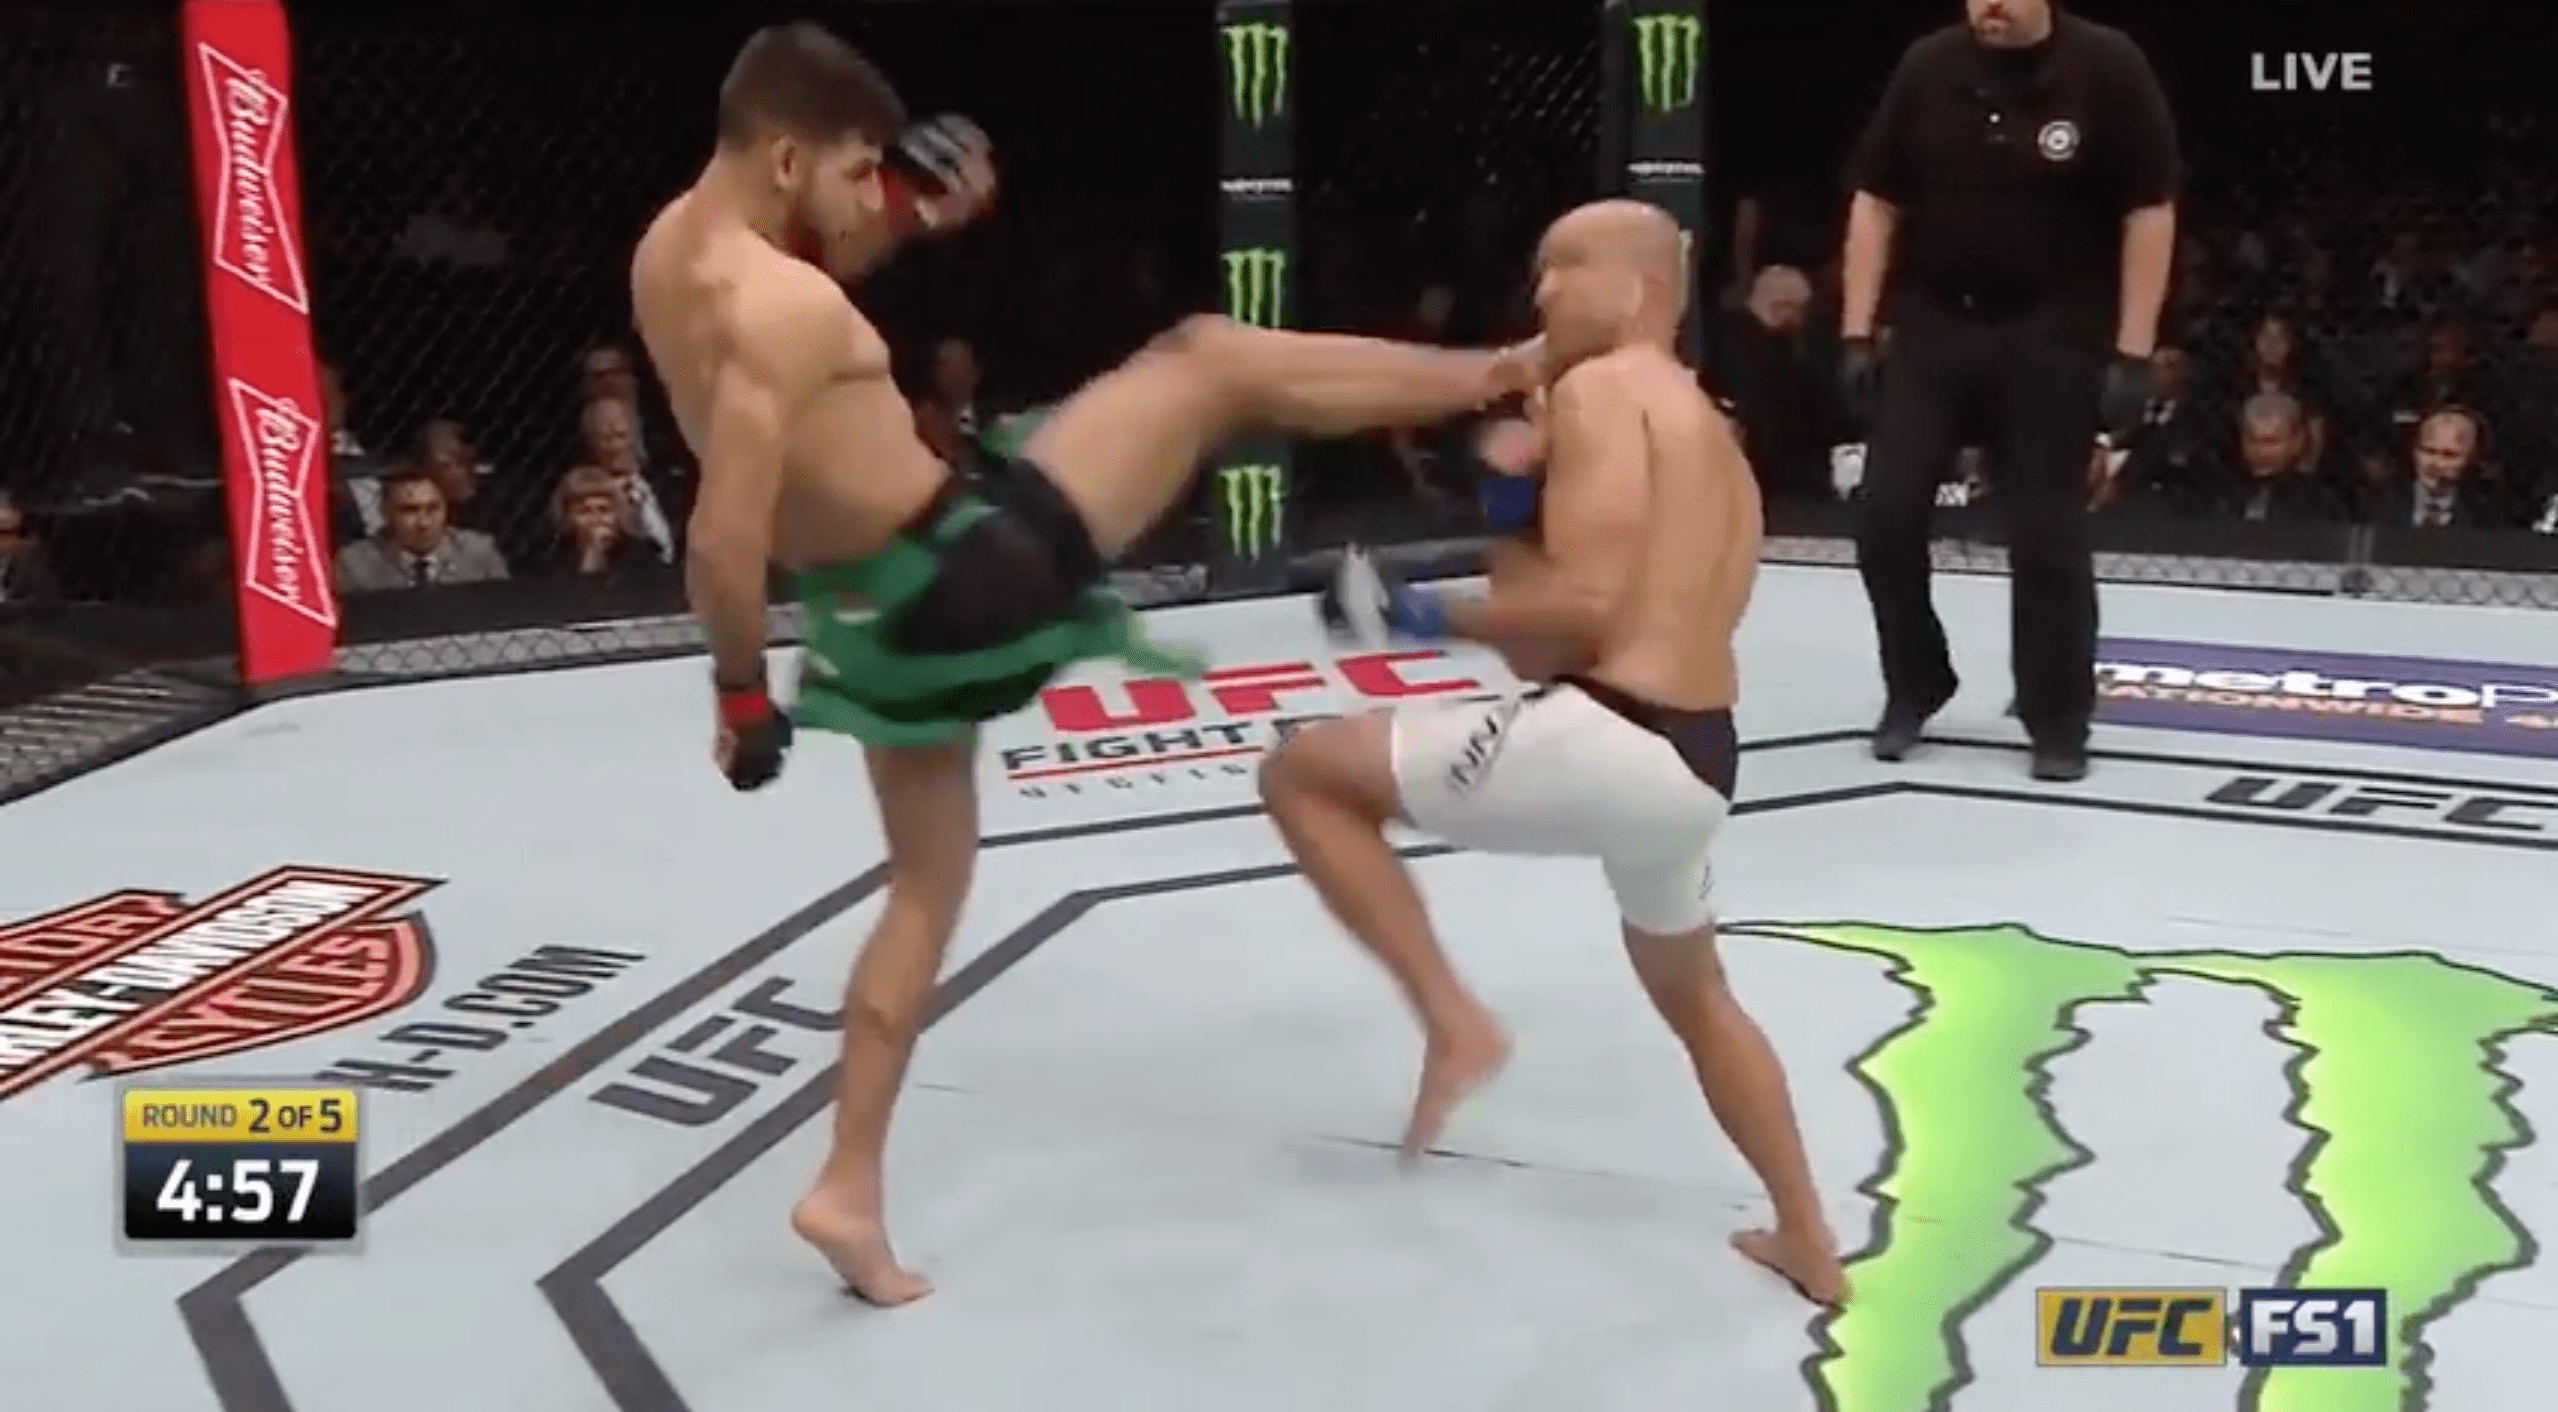 UFC Fight Night 103 - BJ Penn largement dominé par Yair Rodriguez